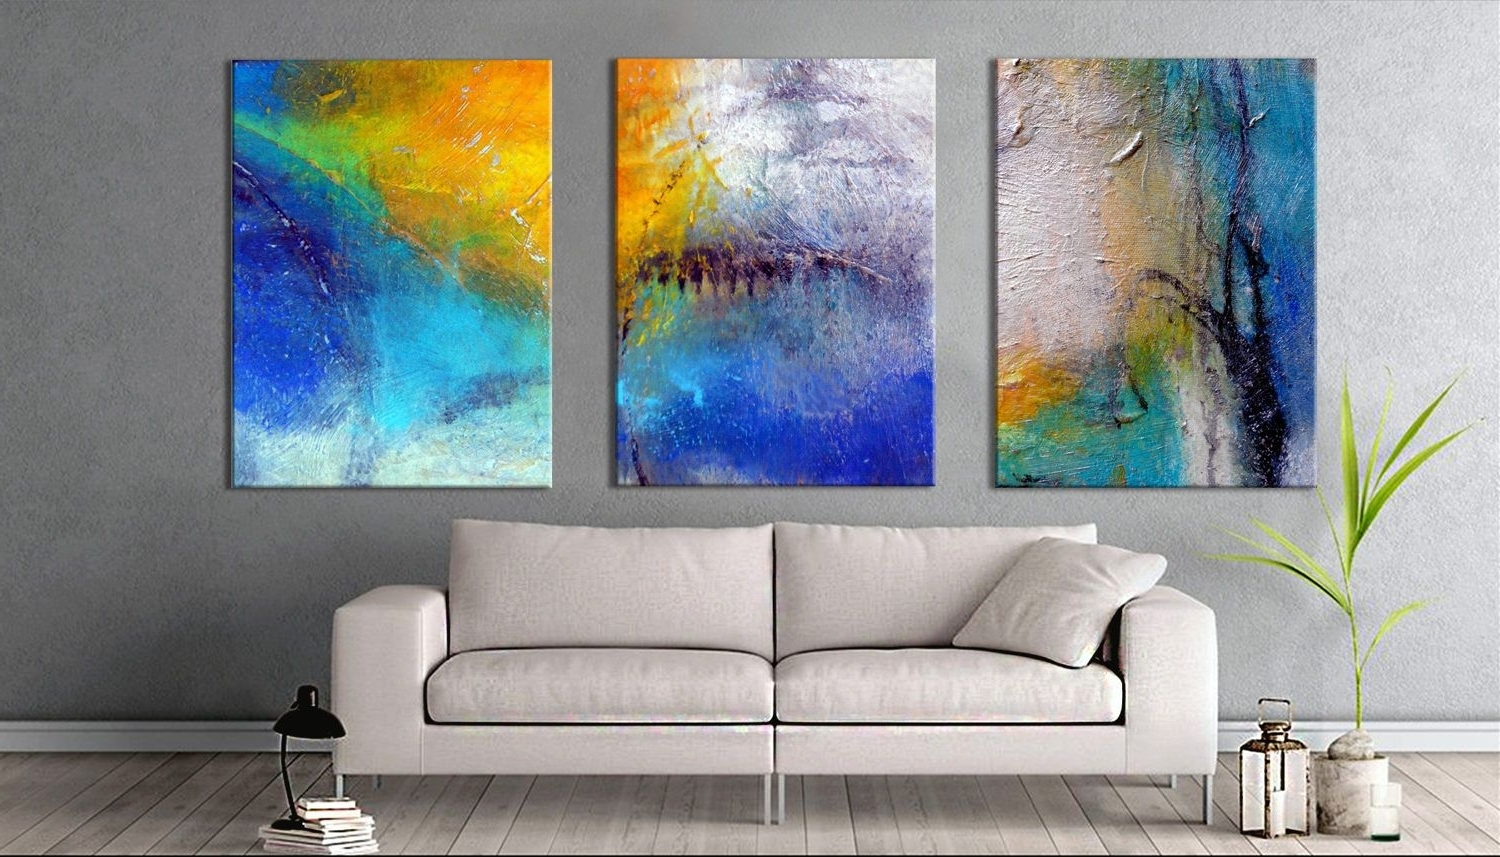 Best And Newest Extra Large Wall Art Regarding Oversized Wall Art (View 9 of 15)